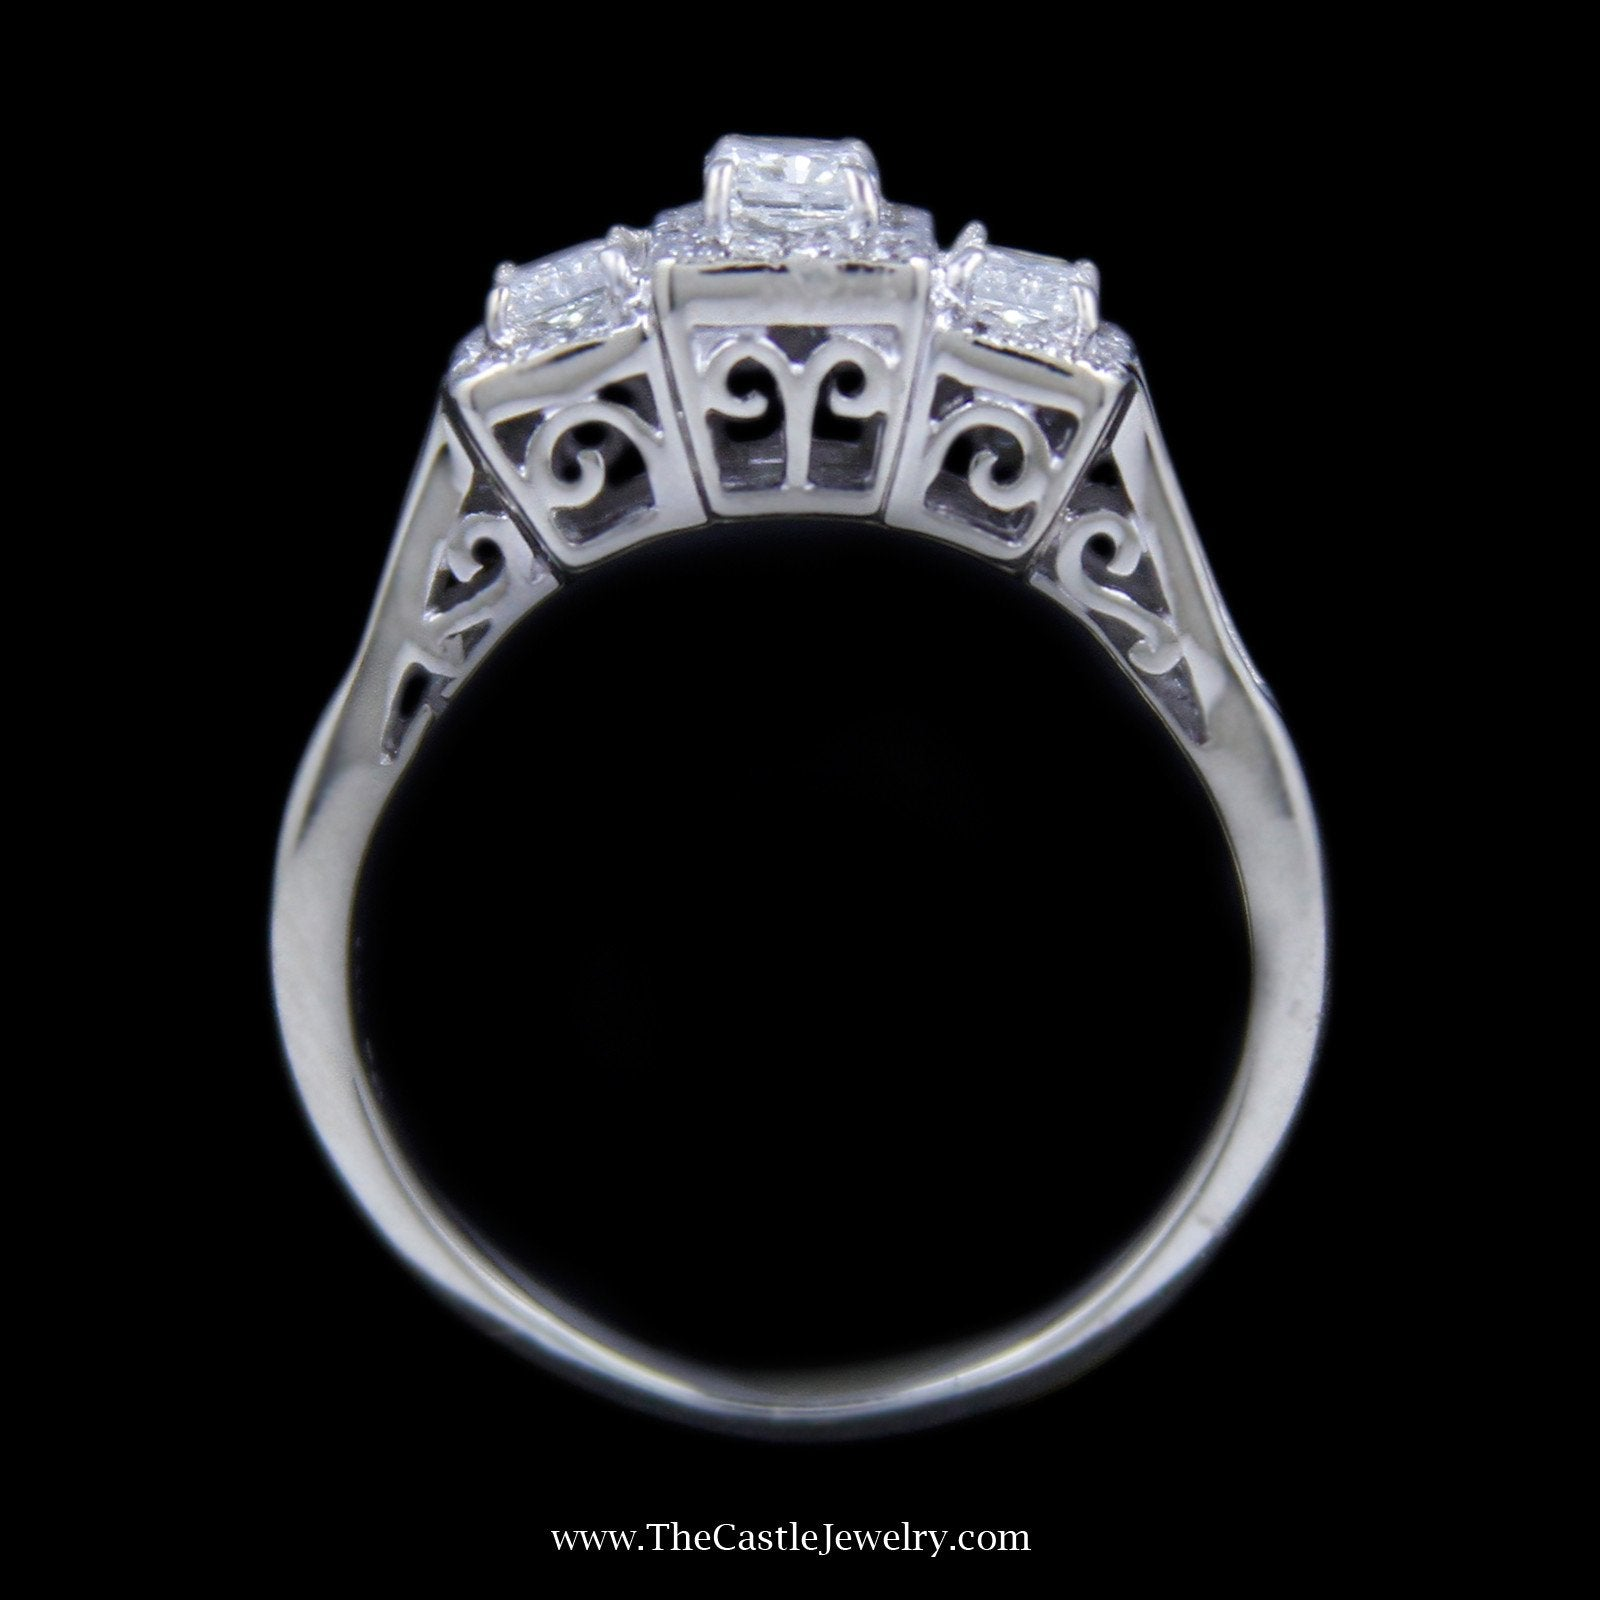 Radiant Cut DeBeers Style Ring with Diamond Accents and Channel Set Bagguette Sides